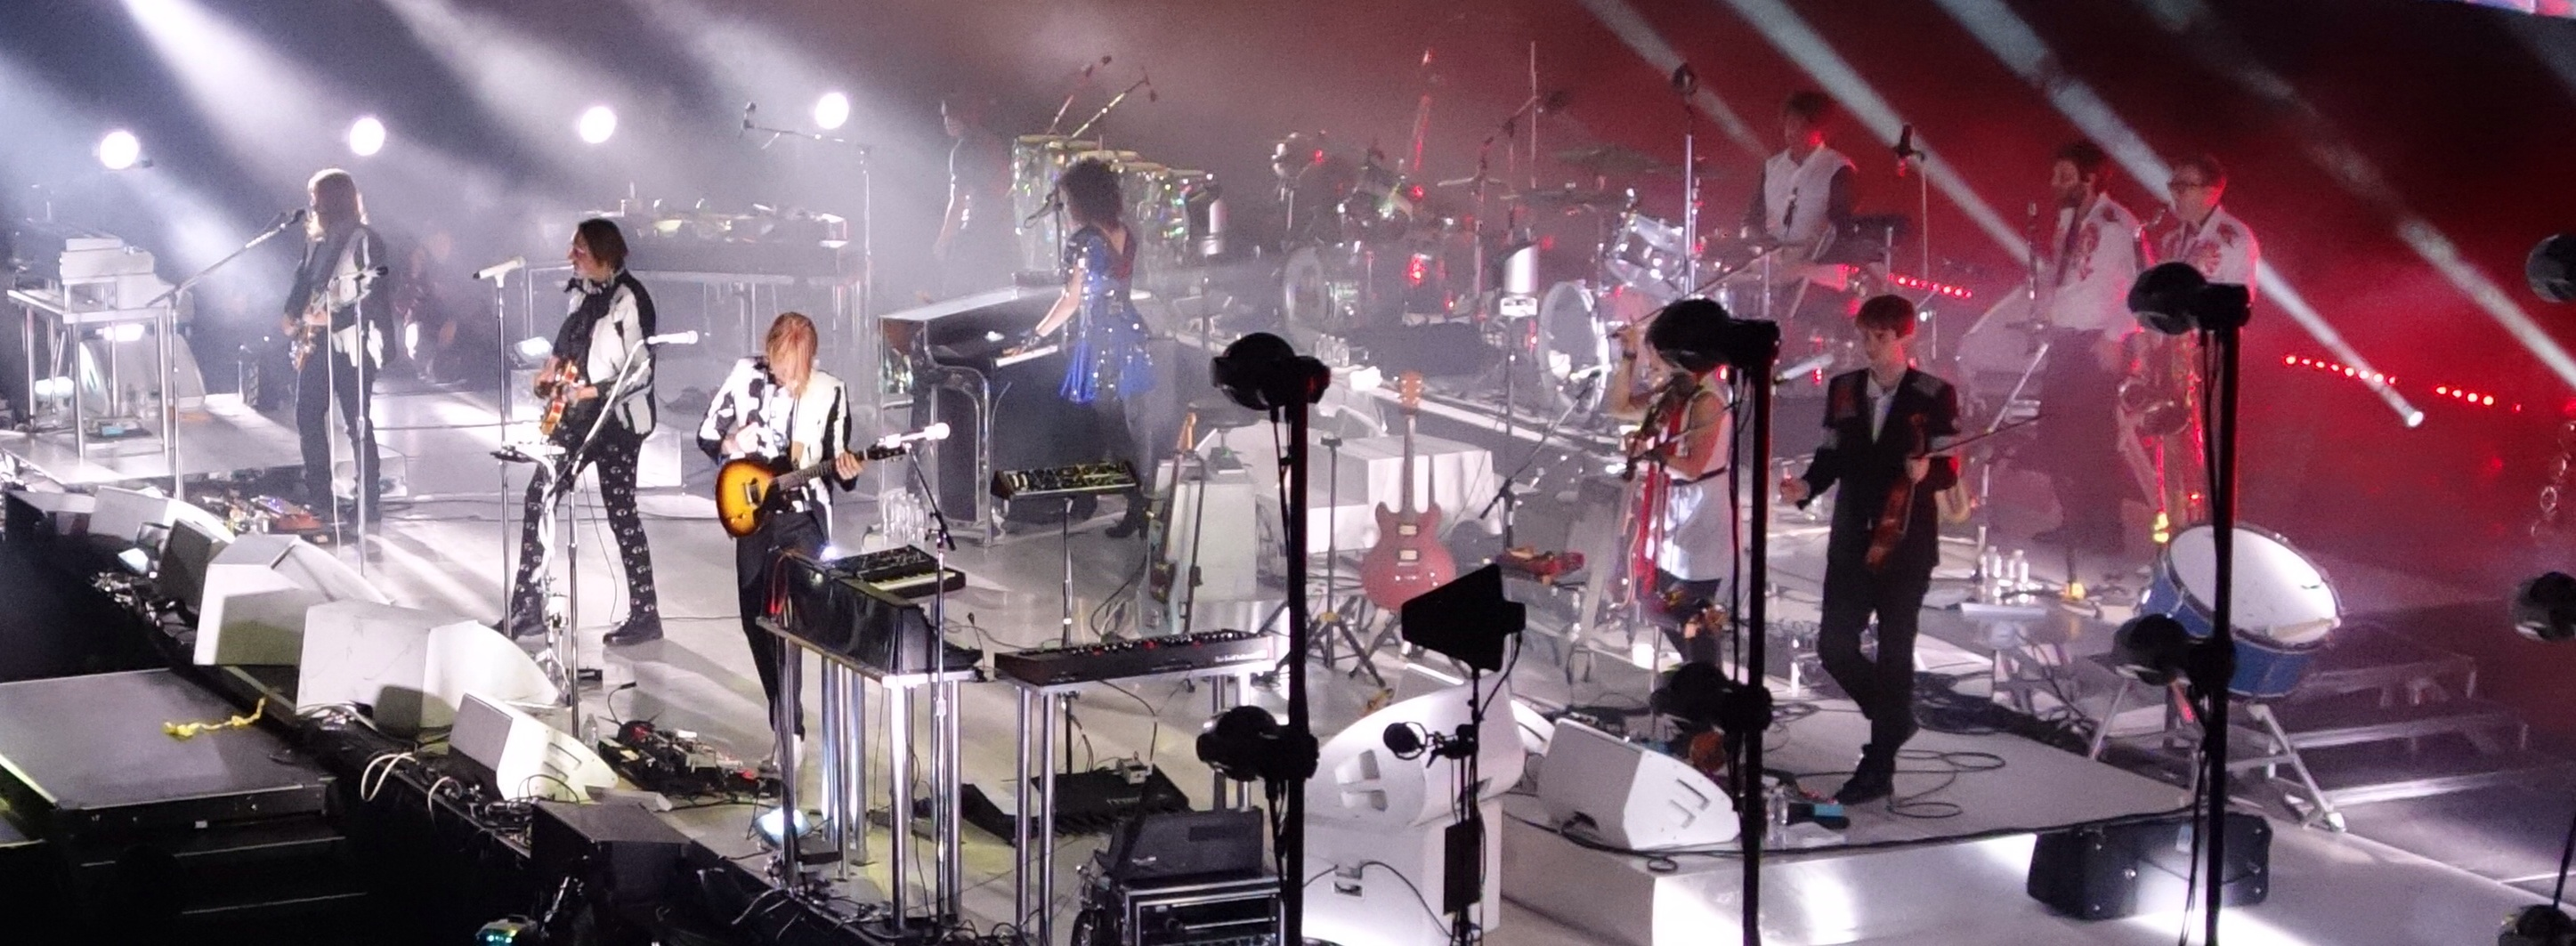 Arcade-Fire-Minneapolis-Reflektor-Tour-2014-6